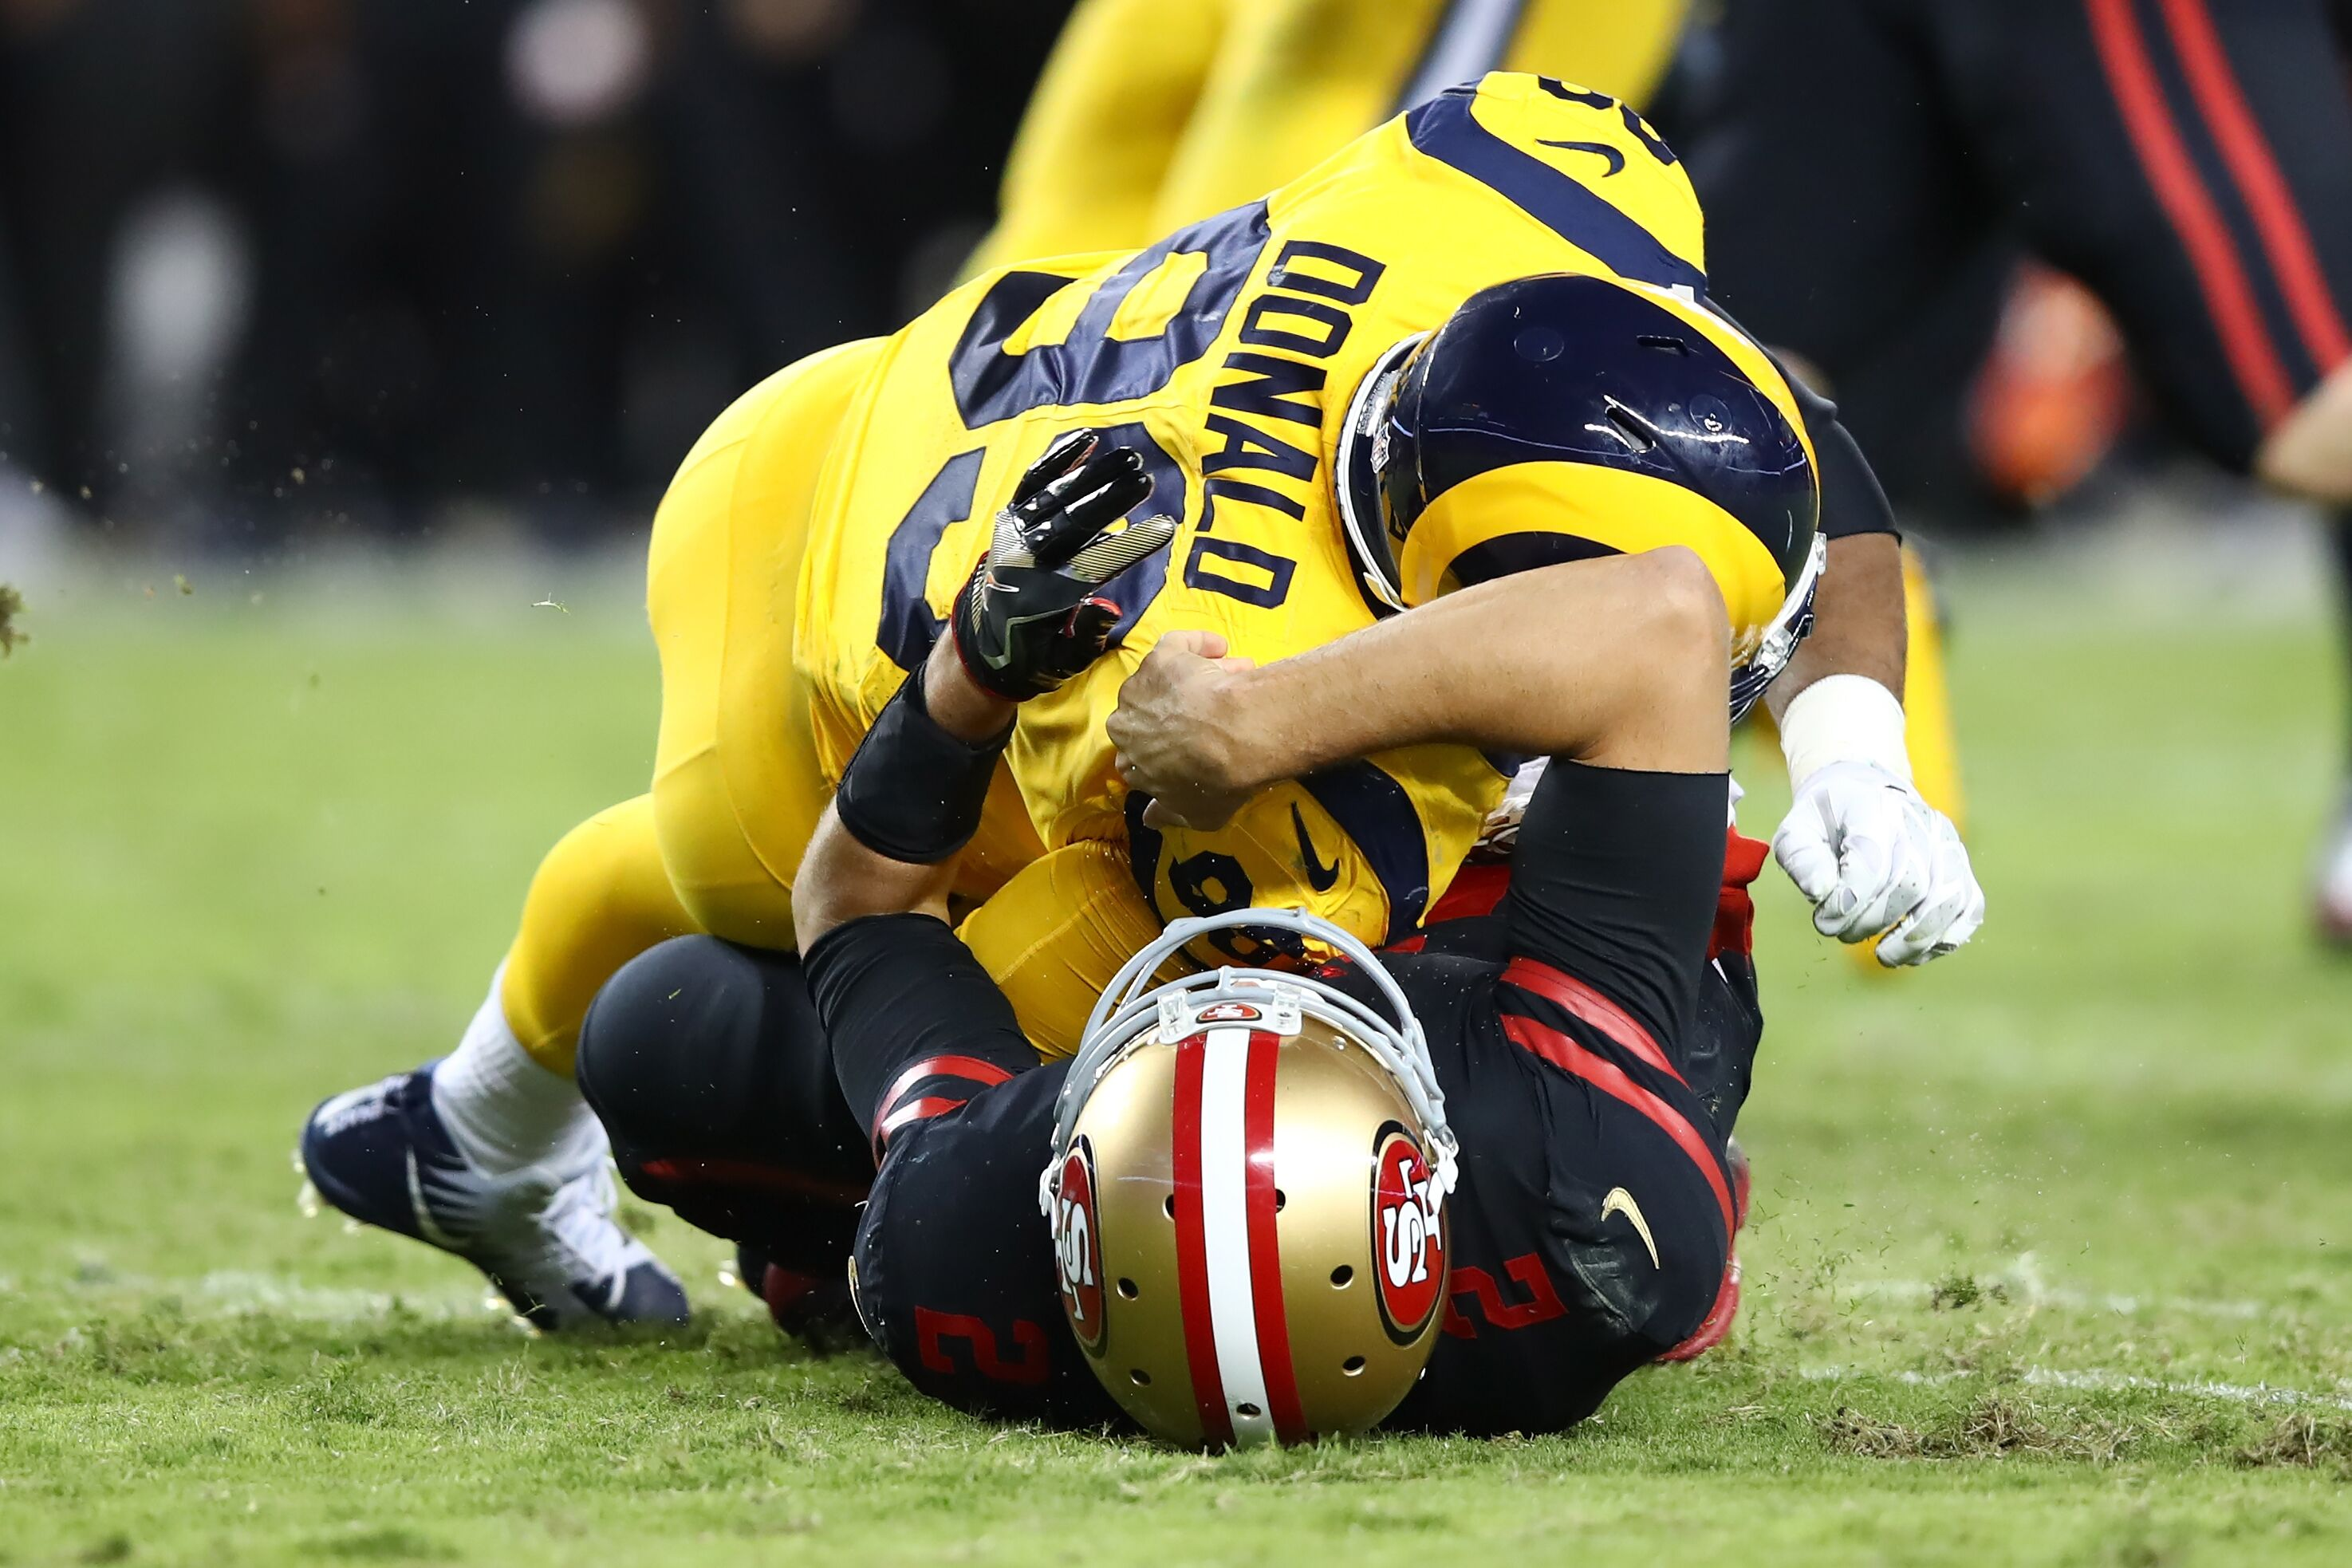 timeless design a09b3 9a215 49ers lose big to Rams in Niner Noise's Week 7 NFL game ...